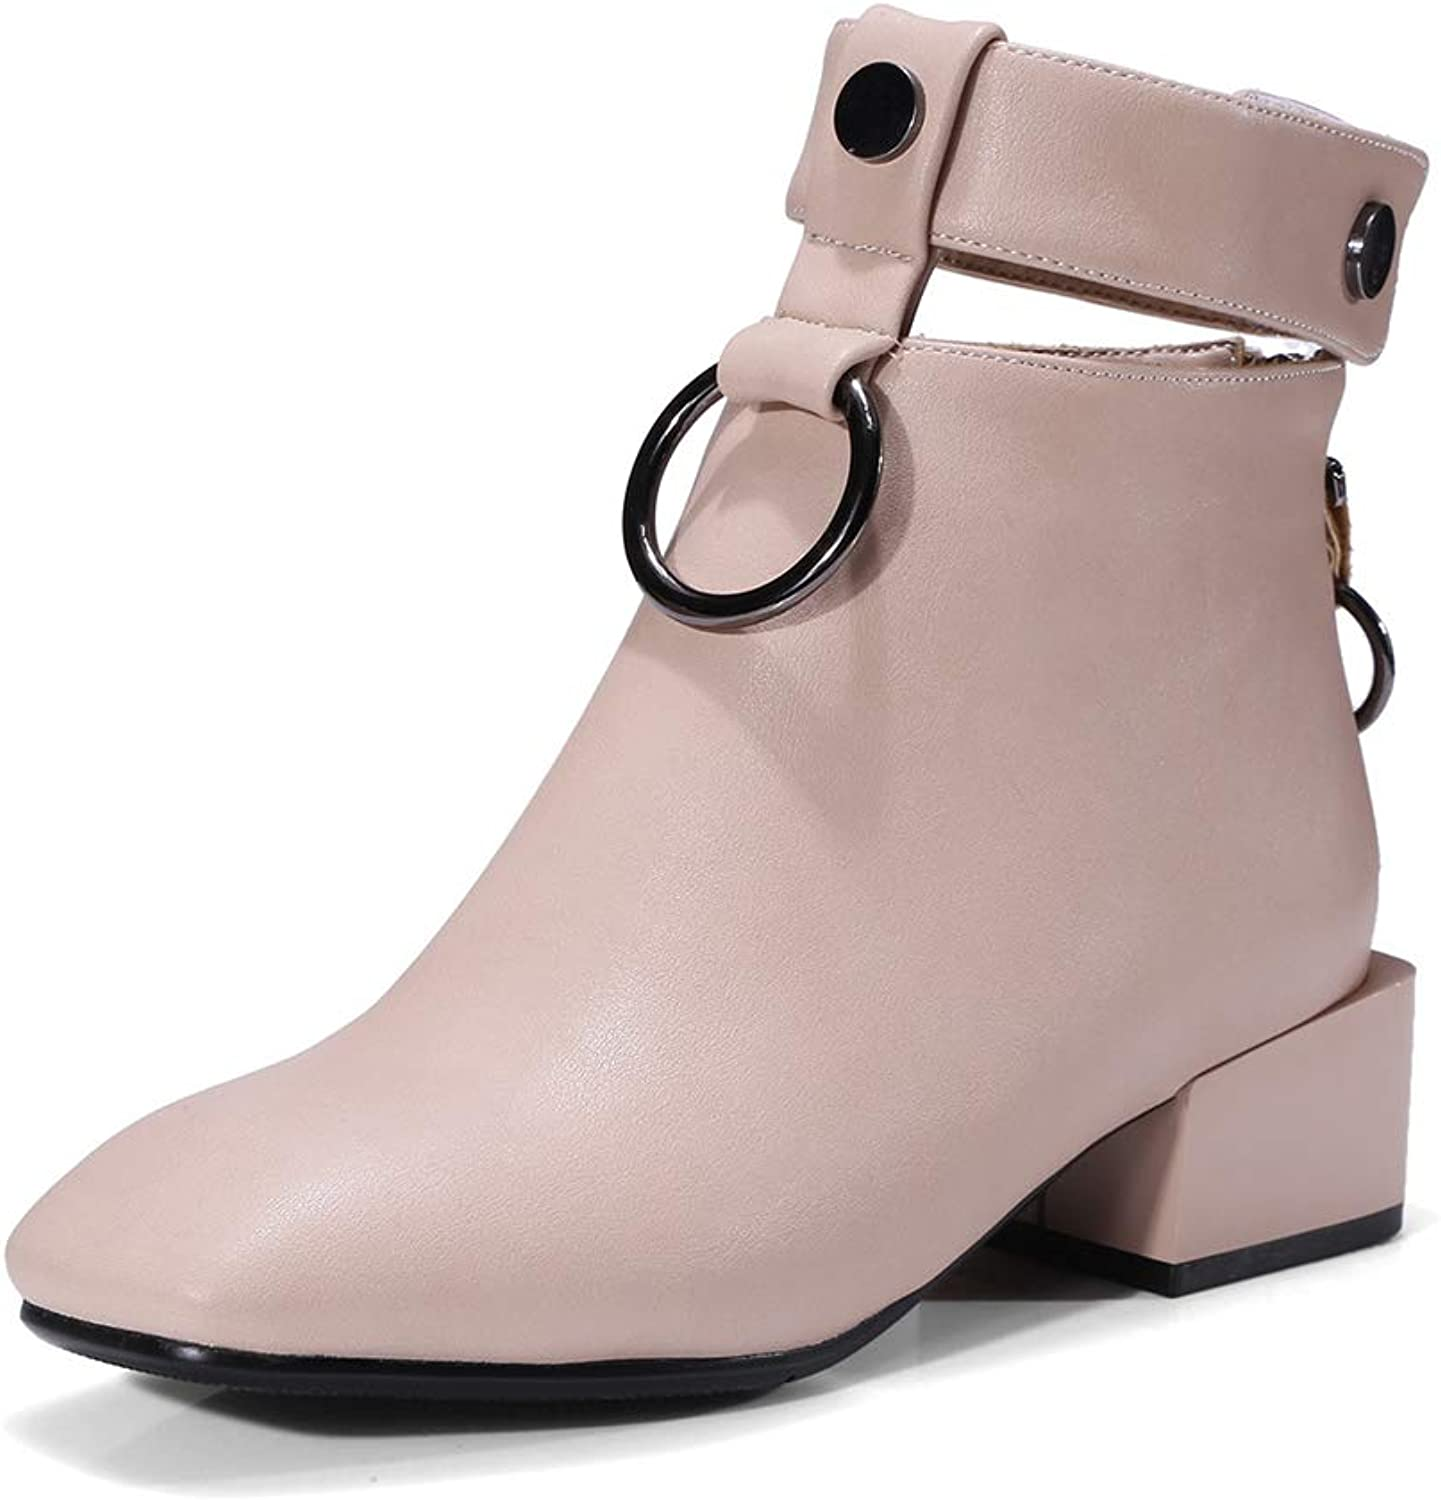 Women Fashion Square Toe Ankle Boots Strap Martin Boots Back Zipper Low Heel Winter shoes Booties